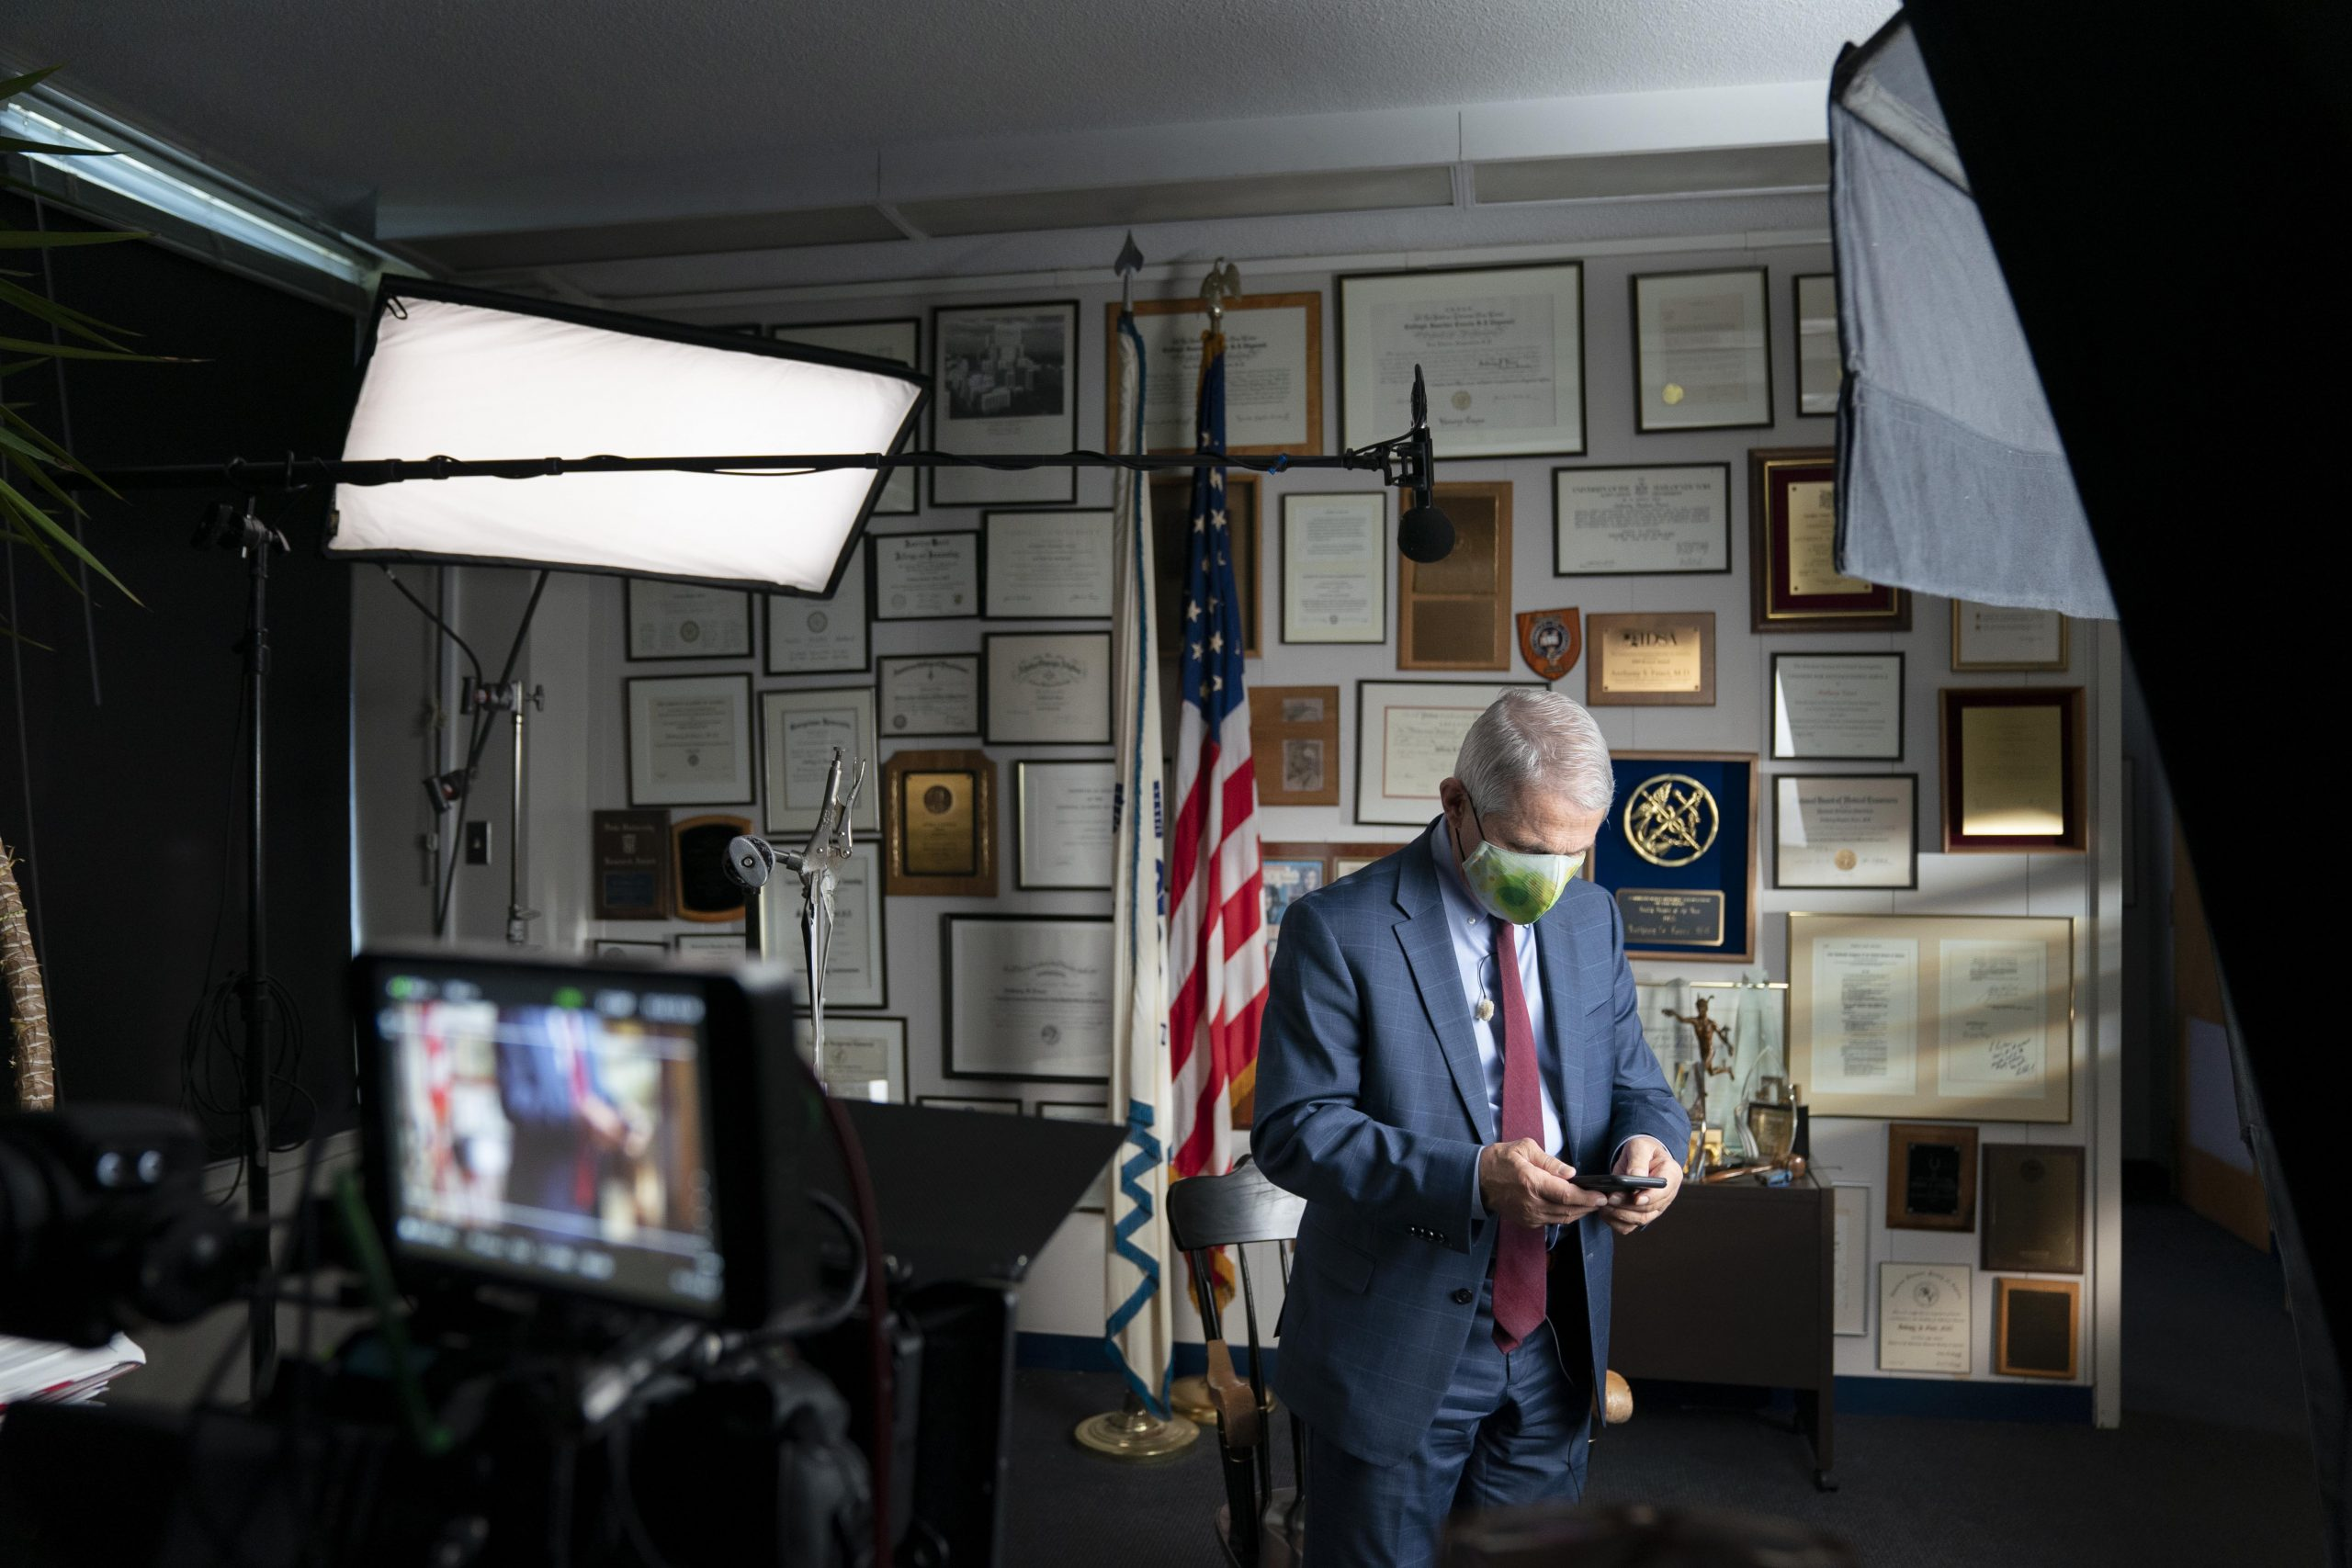 National Geographic Documentary Films Announces New Feature on Dr. Anthony Fauci from Emmy-Winning Directors John Hoffman and Janet Tobias, Oscar and Emmy-Winning Producing Team Dan Cogan and Liz Garbus, and Story Syndicate